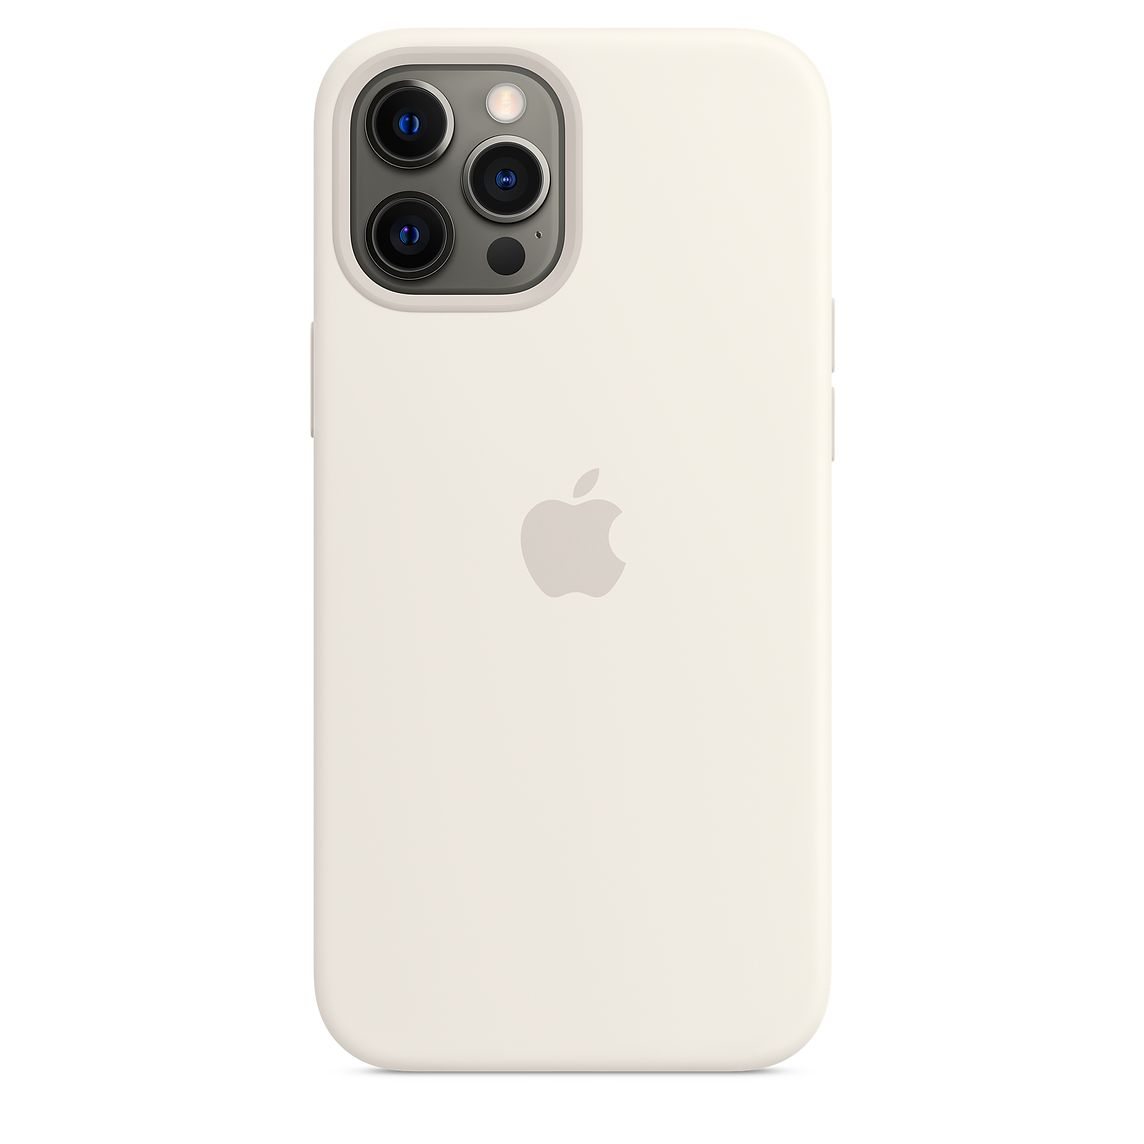 - iPhone 12 Pro Max Silicone Case with MagSafe / Blanco 2